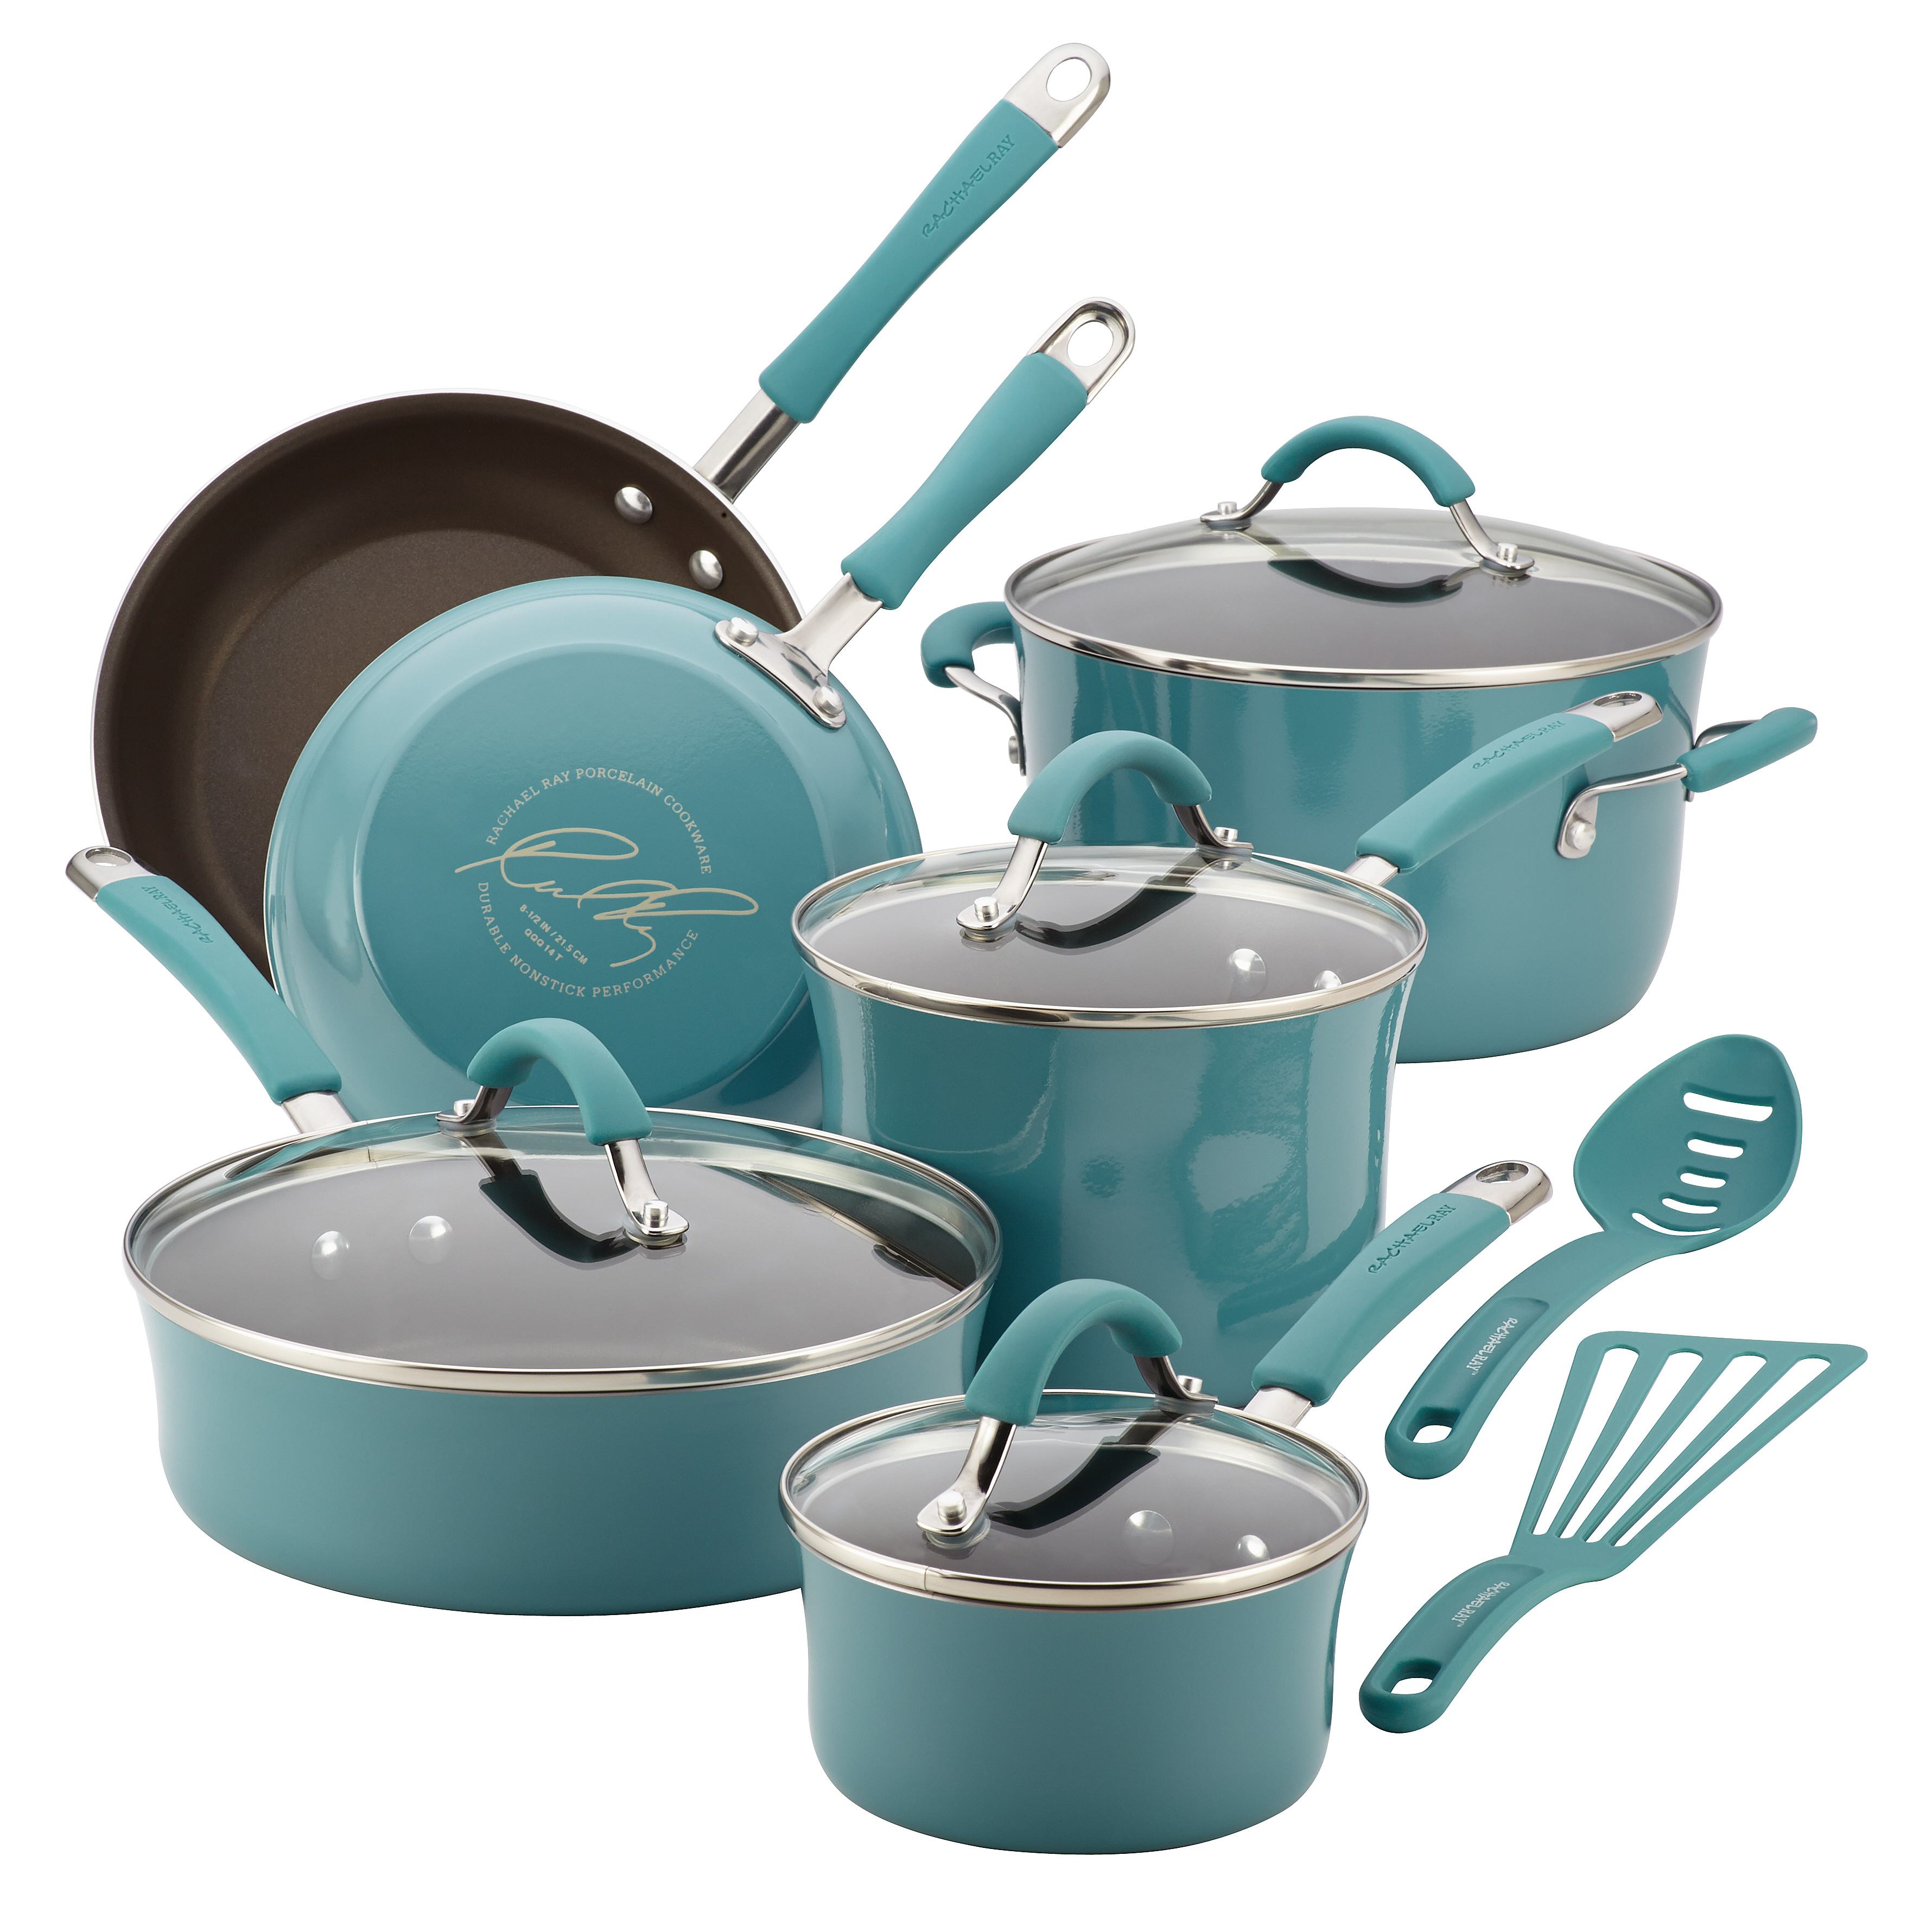 Rachael Ray(r) Cucina Hard Porcelain Enamel Nonstick Cookware Set, 12-Piece, Agave Blue